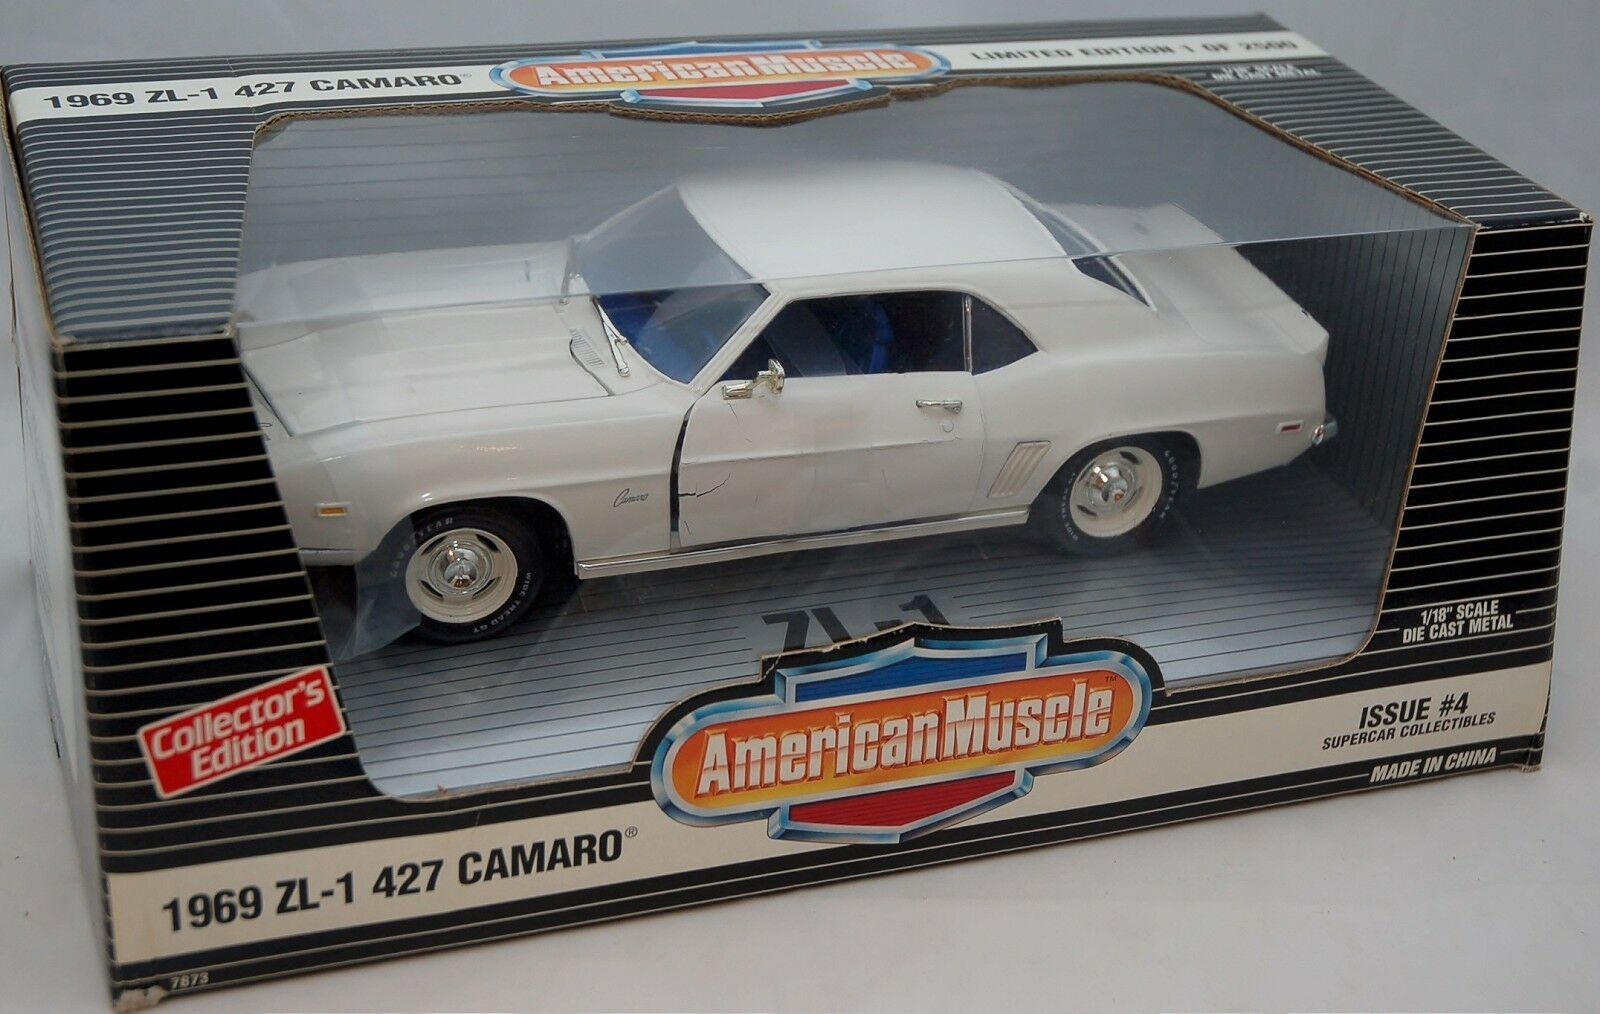 ERTL 1 18 1969 Camaro ZL-1 427 Supercar Dover WHITE 7873 American Muscle DAMAGED